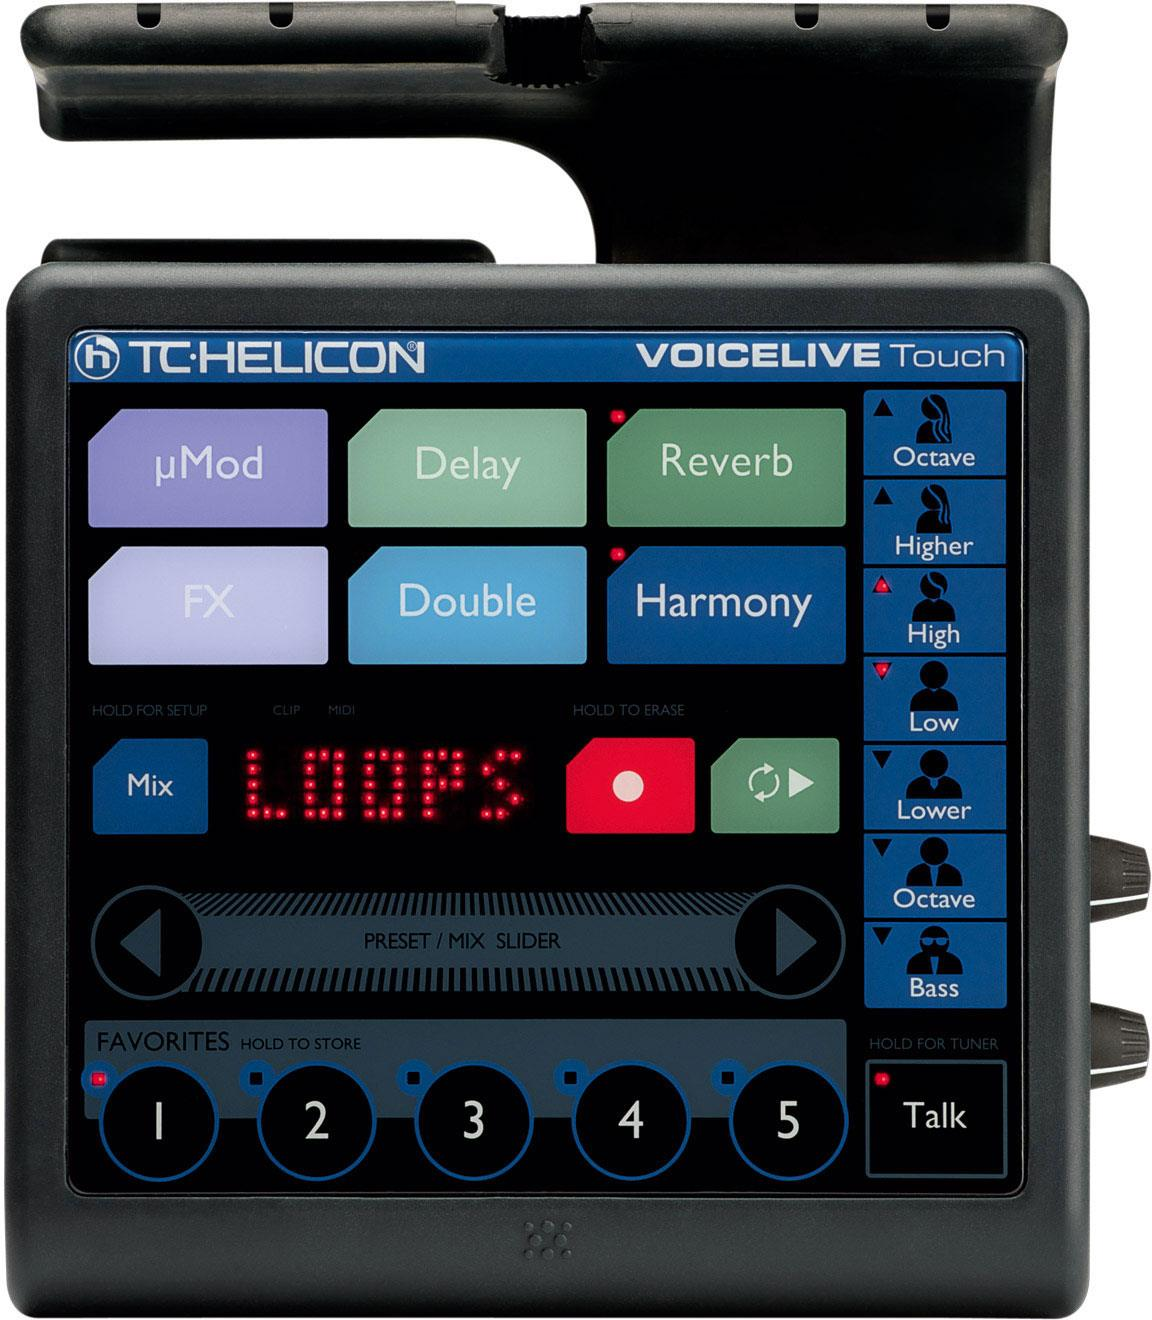 Prijs Mp75 Tc Helicon Voicelive Touch Pack With Mp75 And Switch3